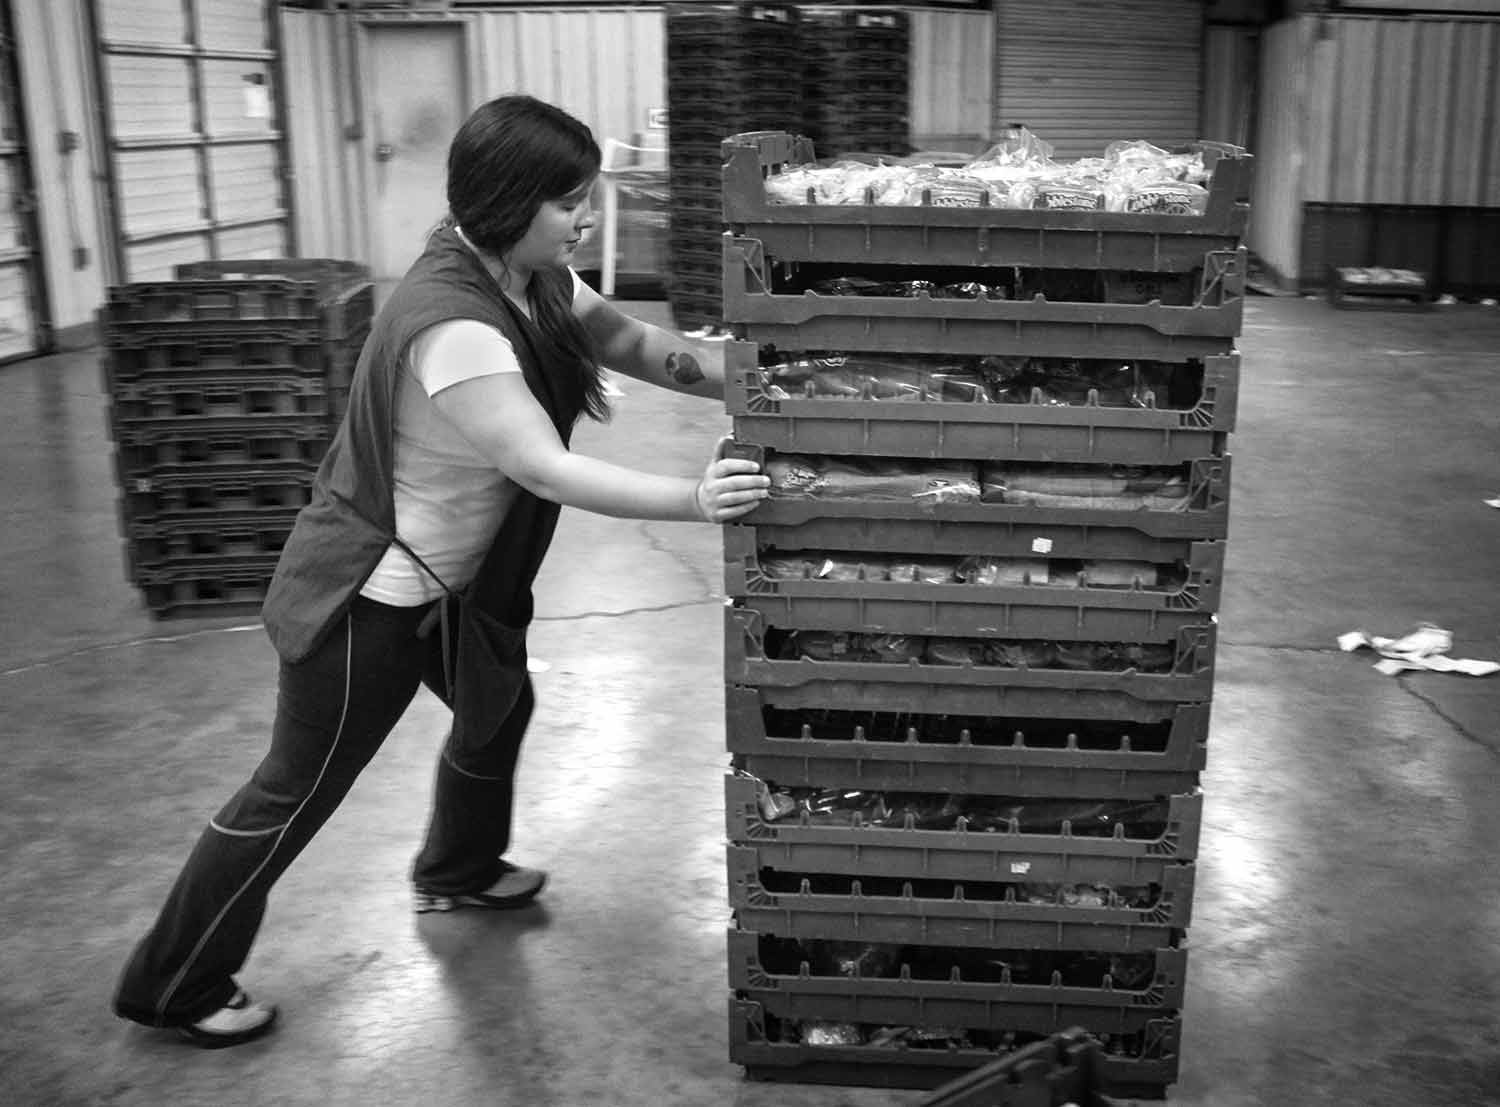 Carol Longmire pushes bread to be sold at Flower's discount bakery store. photo by Michael Agreda - 2013